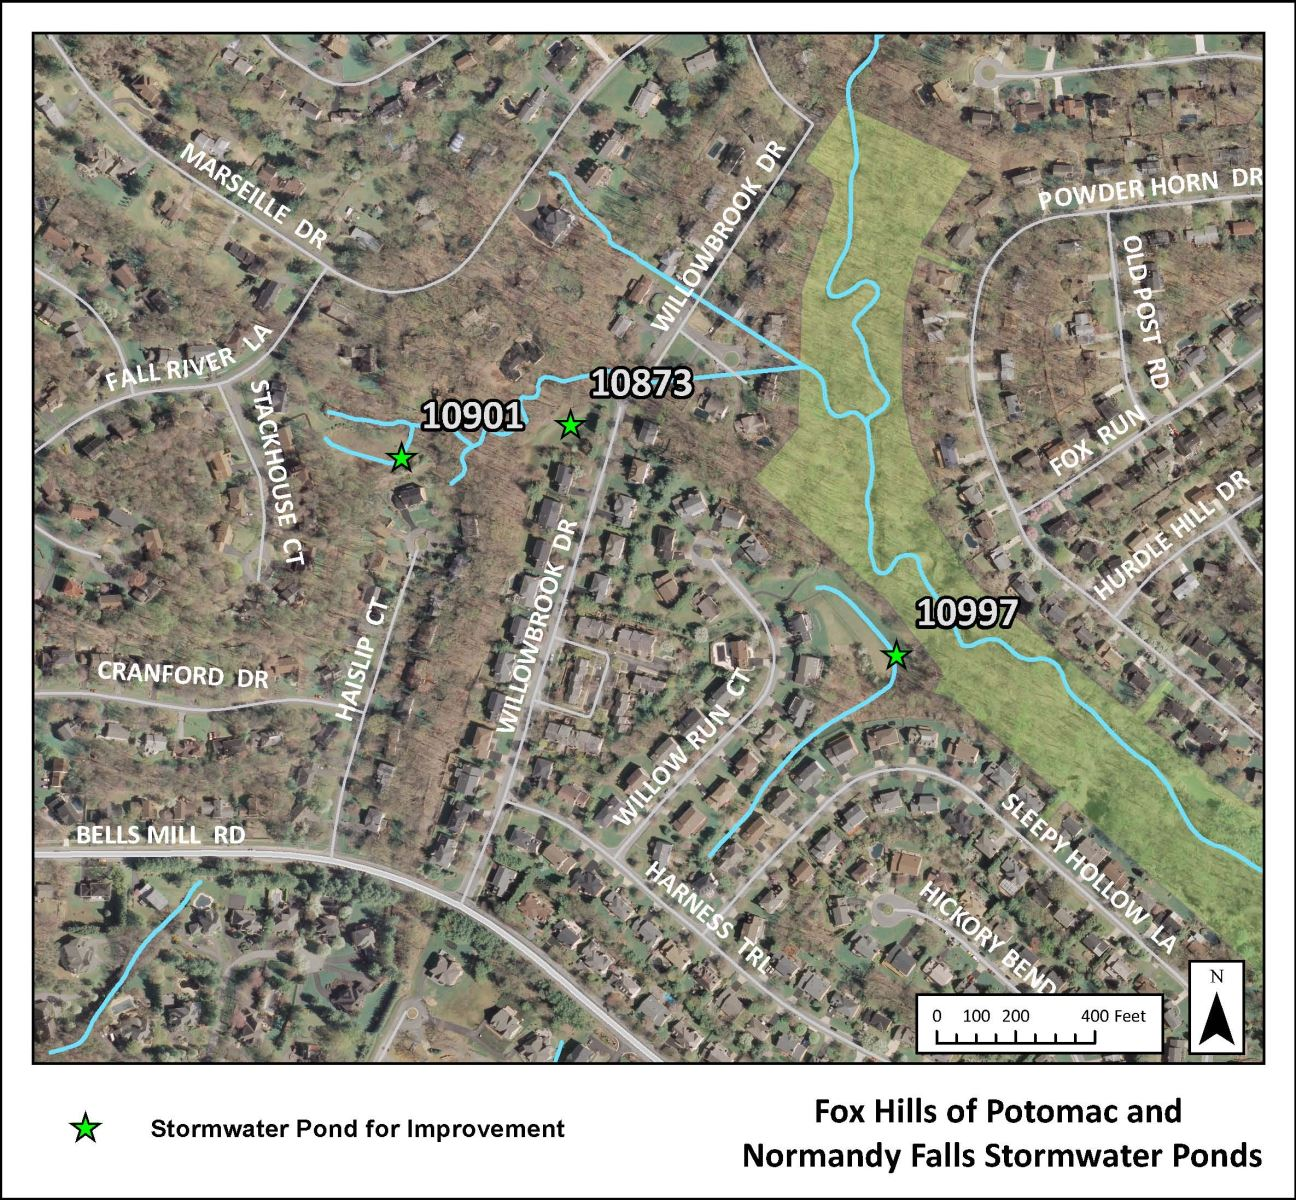 Image of Fox Hills of Potomac and Normandy Falls